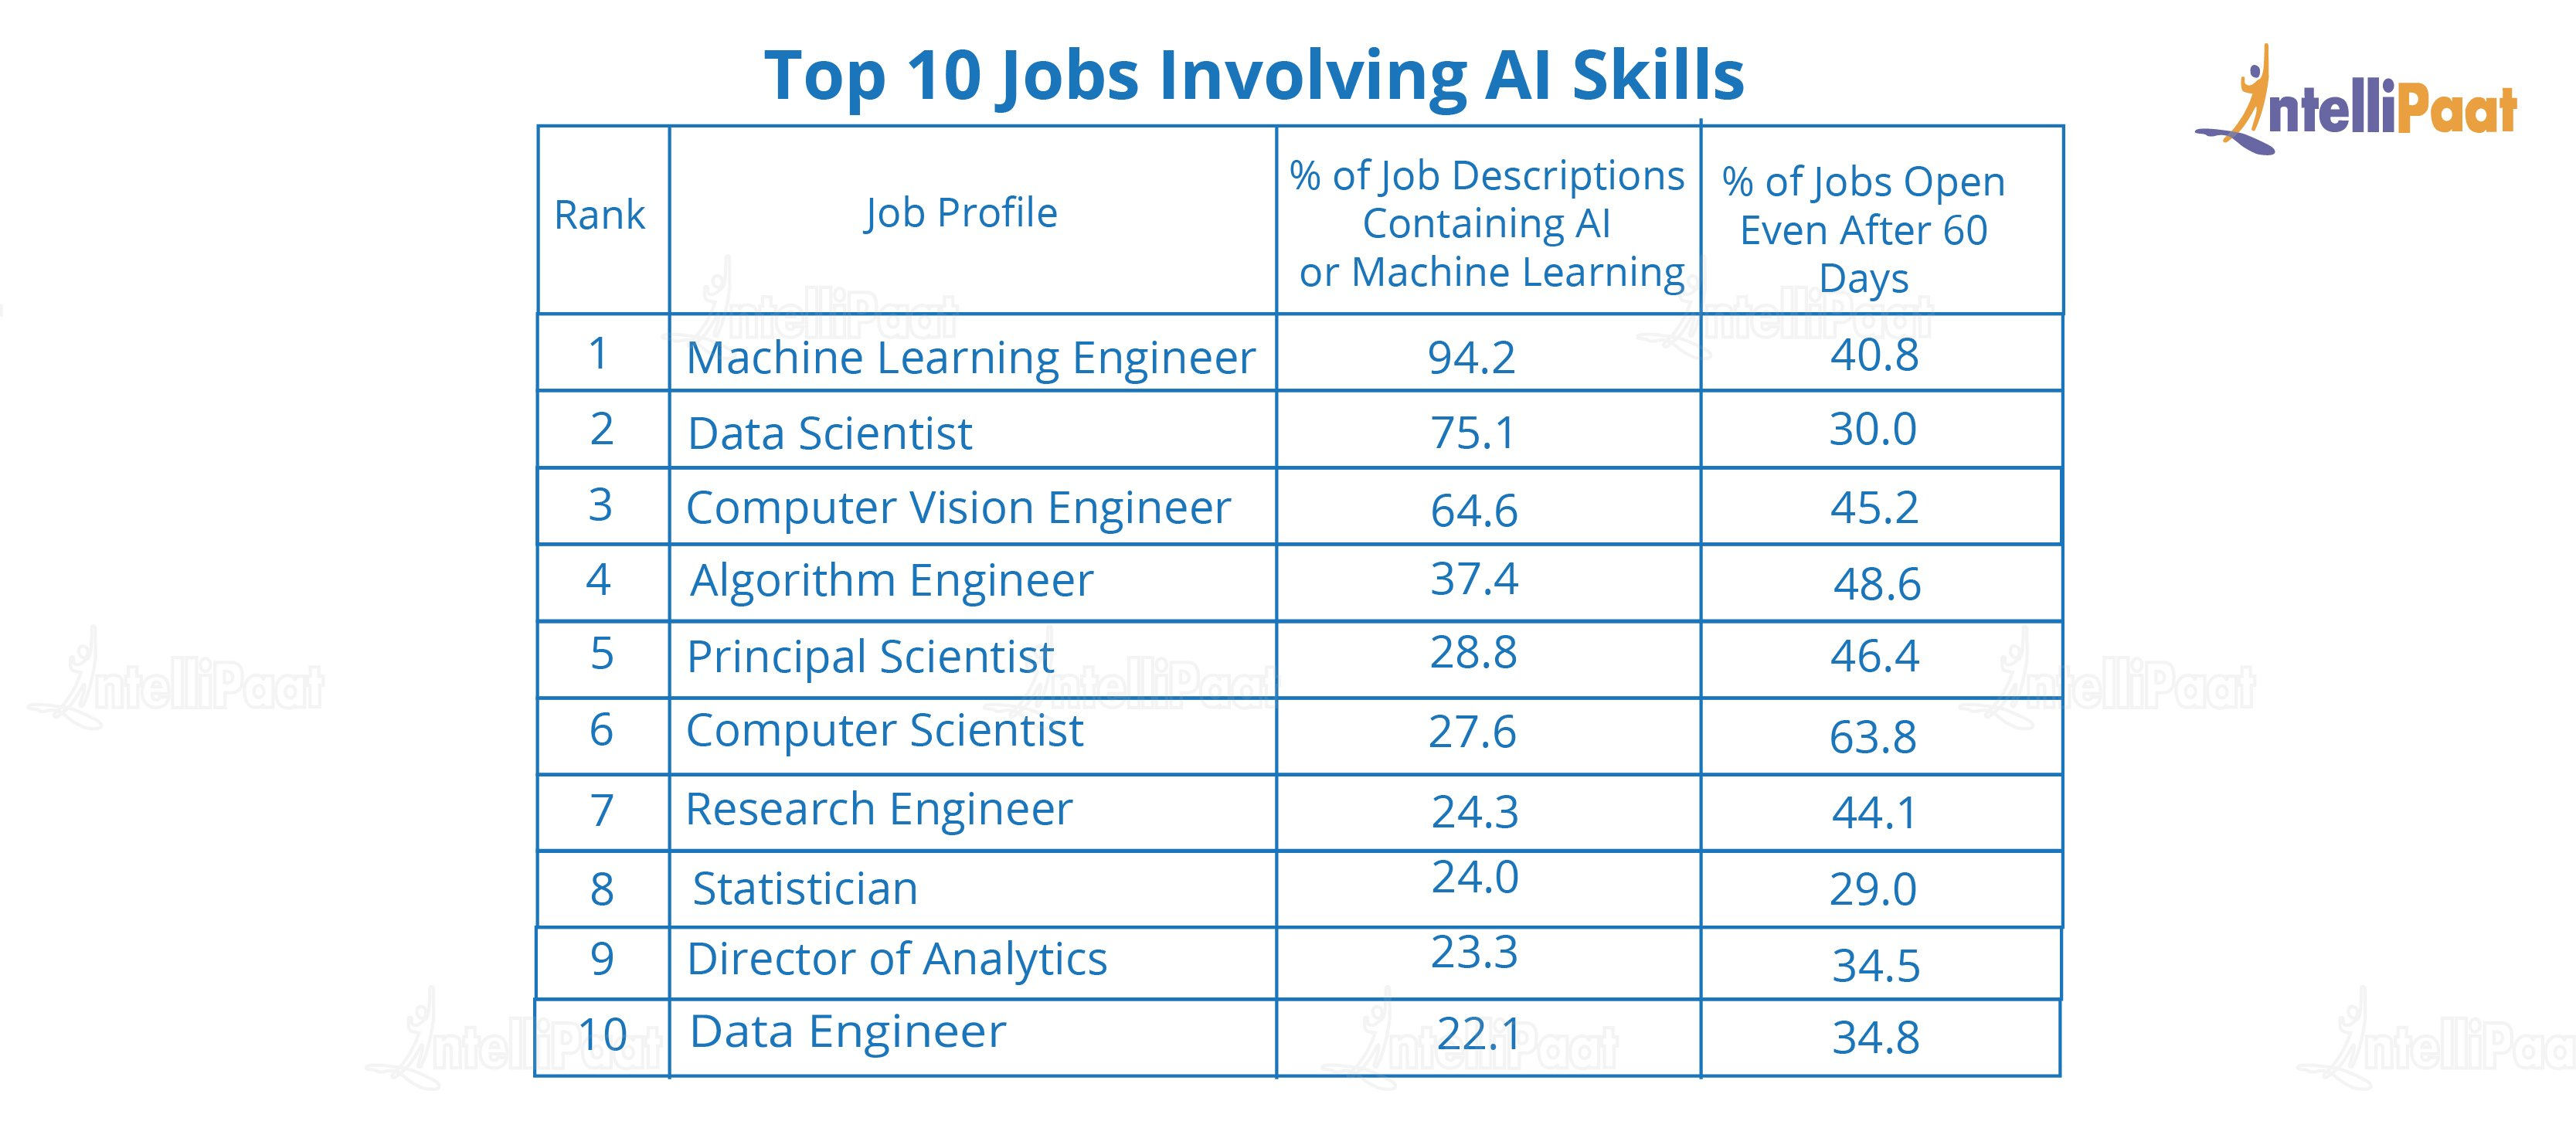 Top 10 AI Jobs